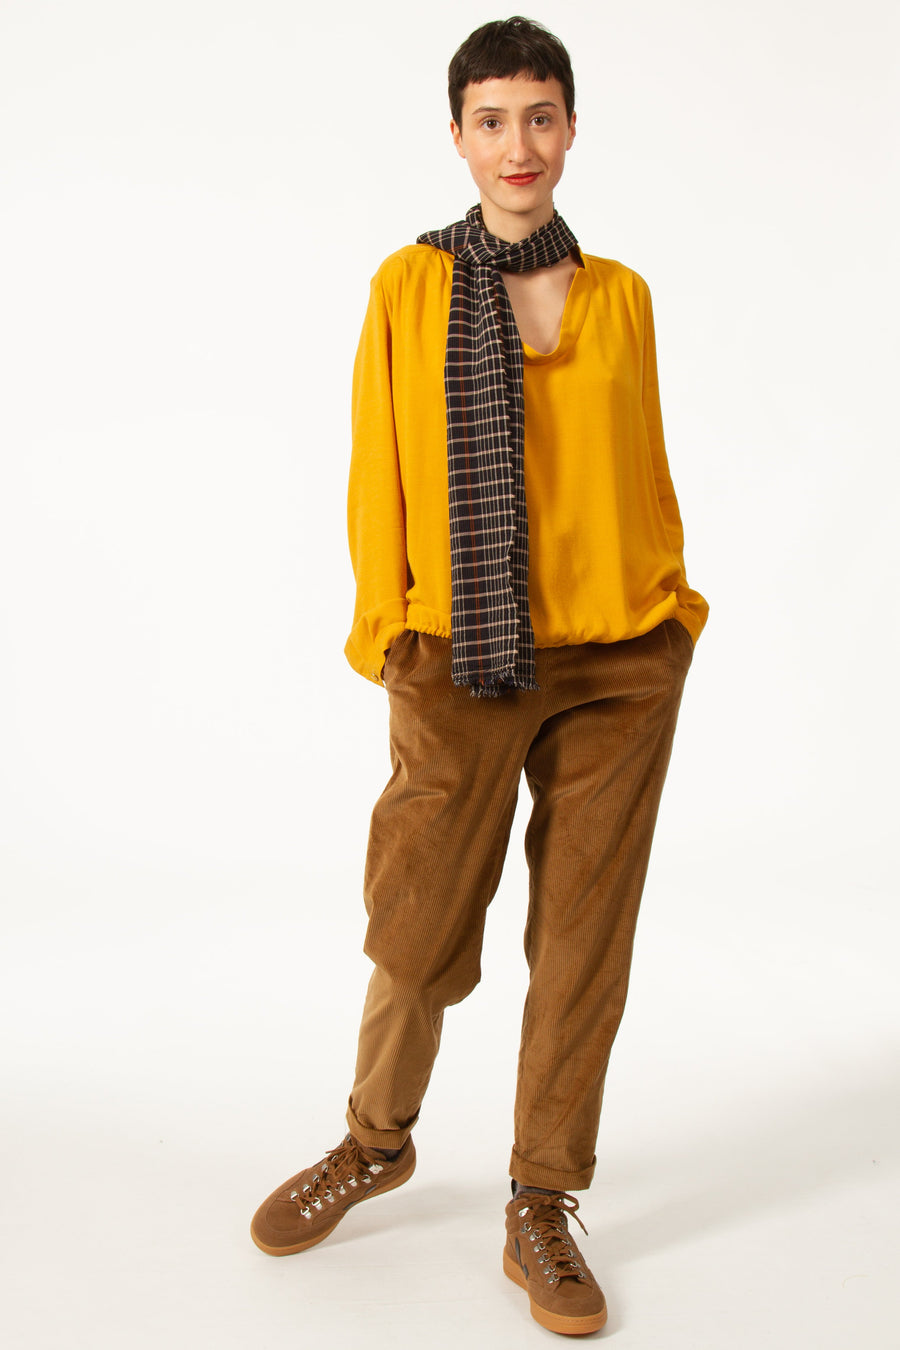 JEROME Yellow Top